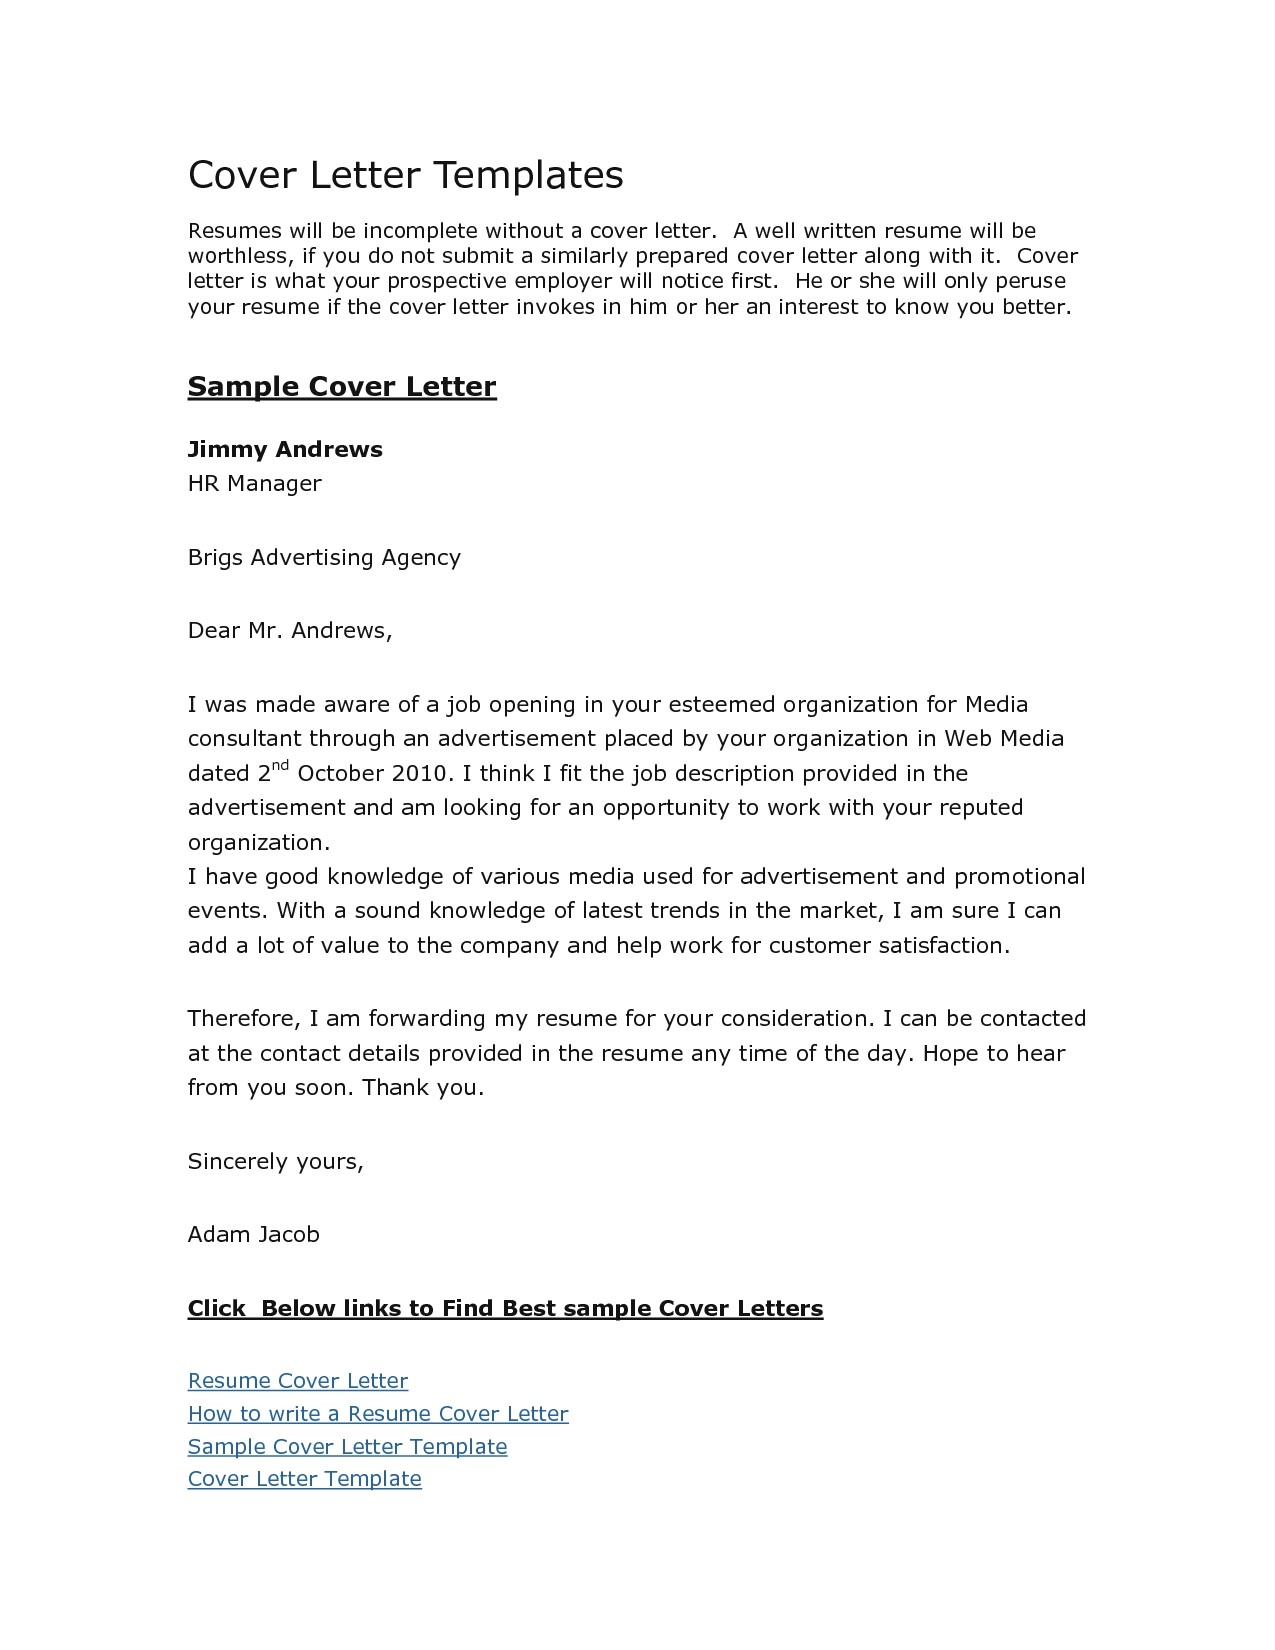 cover letters templates free